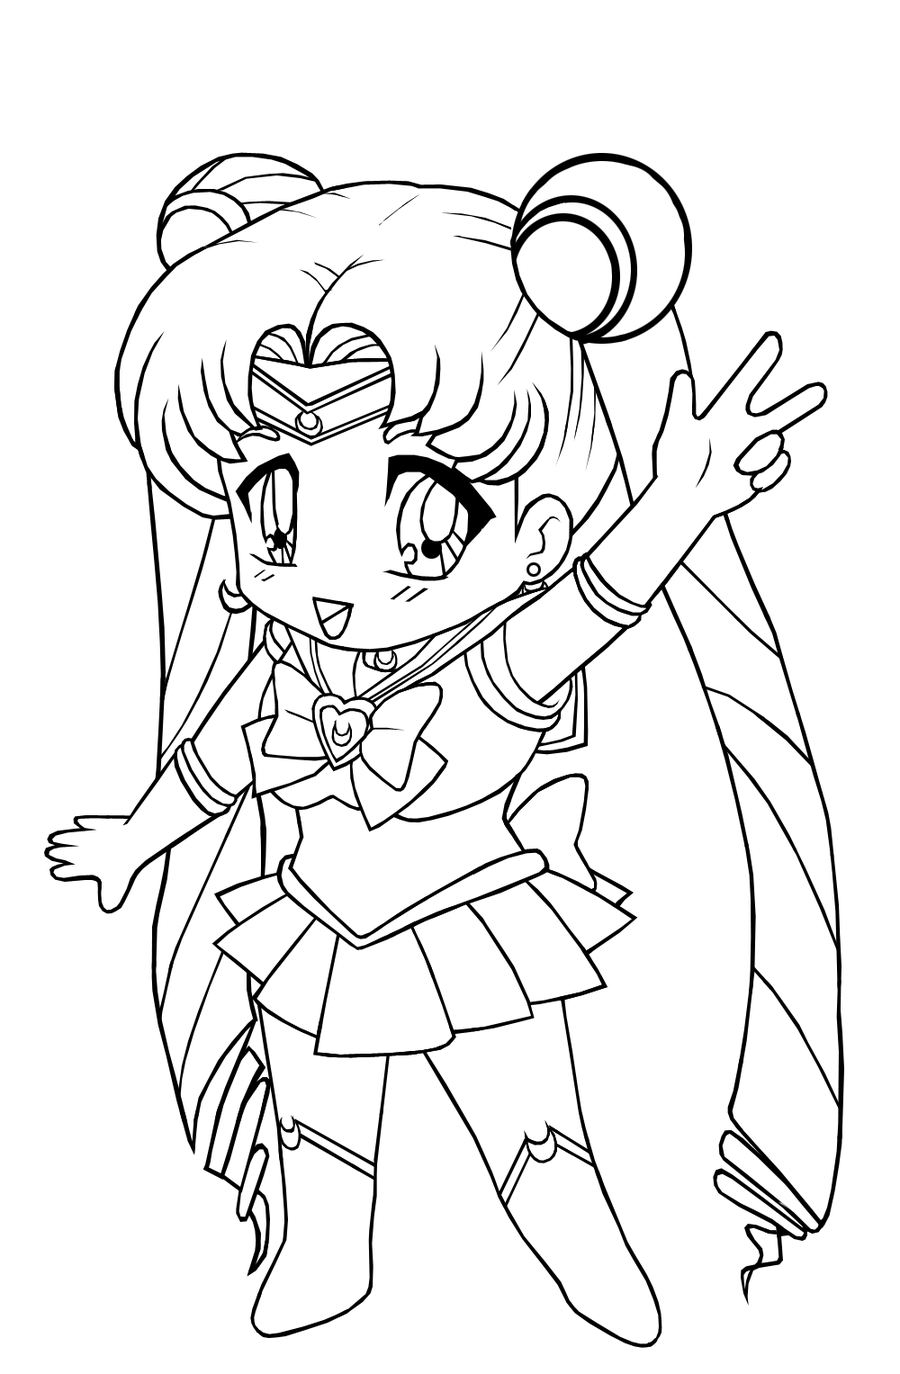 Sailor Moon Luna Coloring Pages - Coloring Home